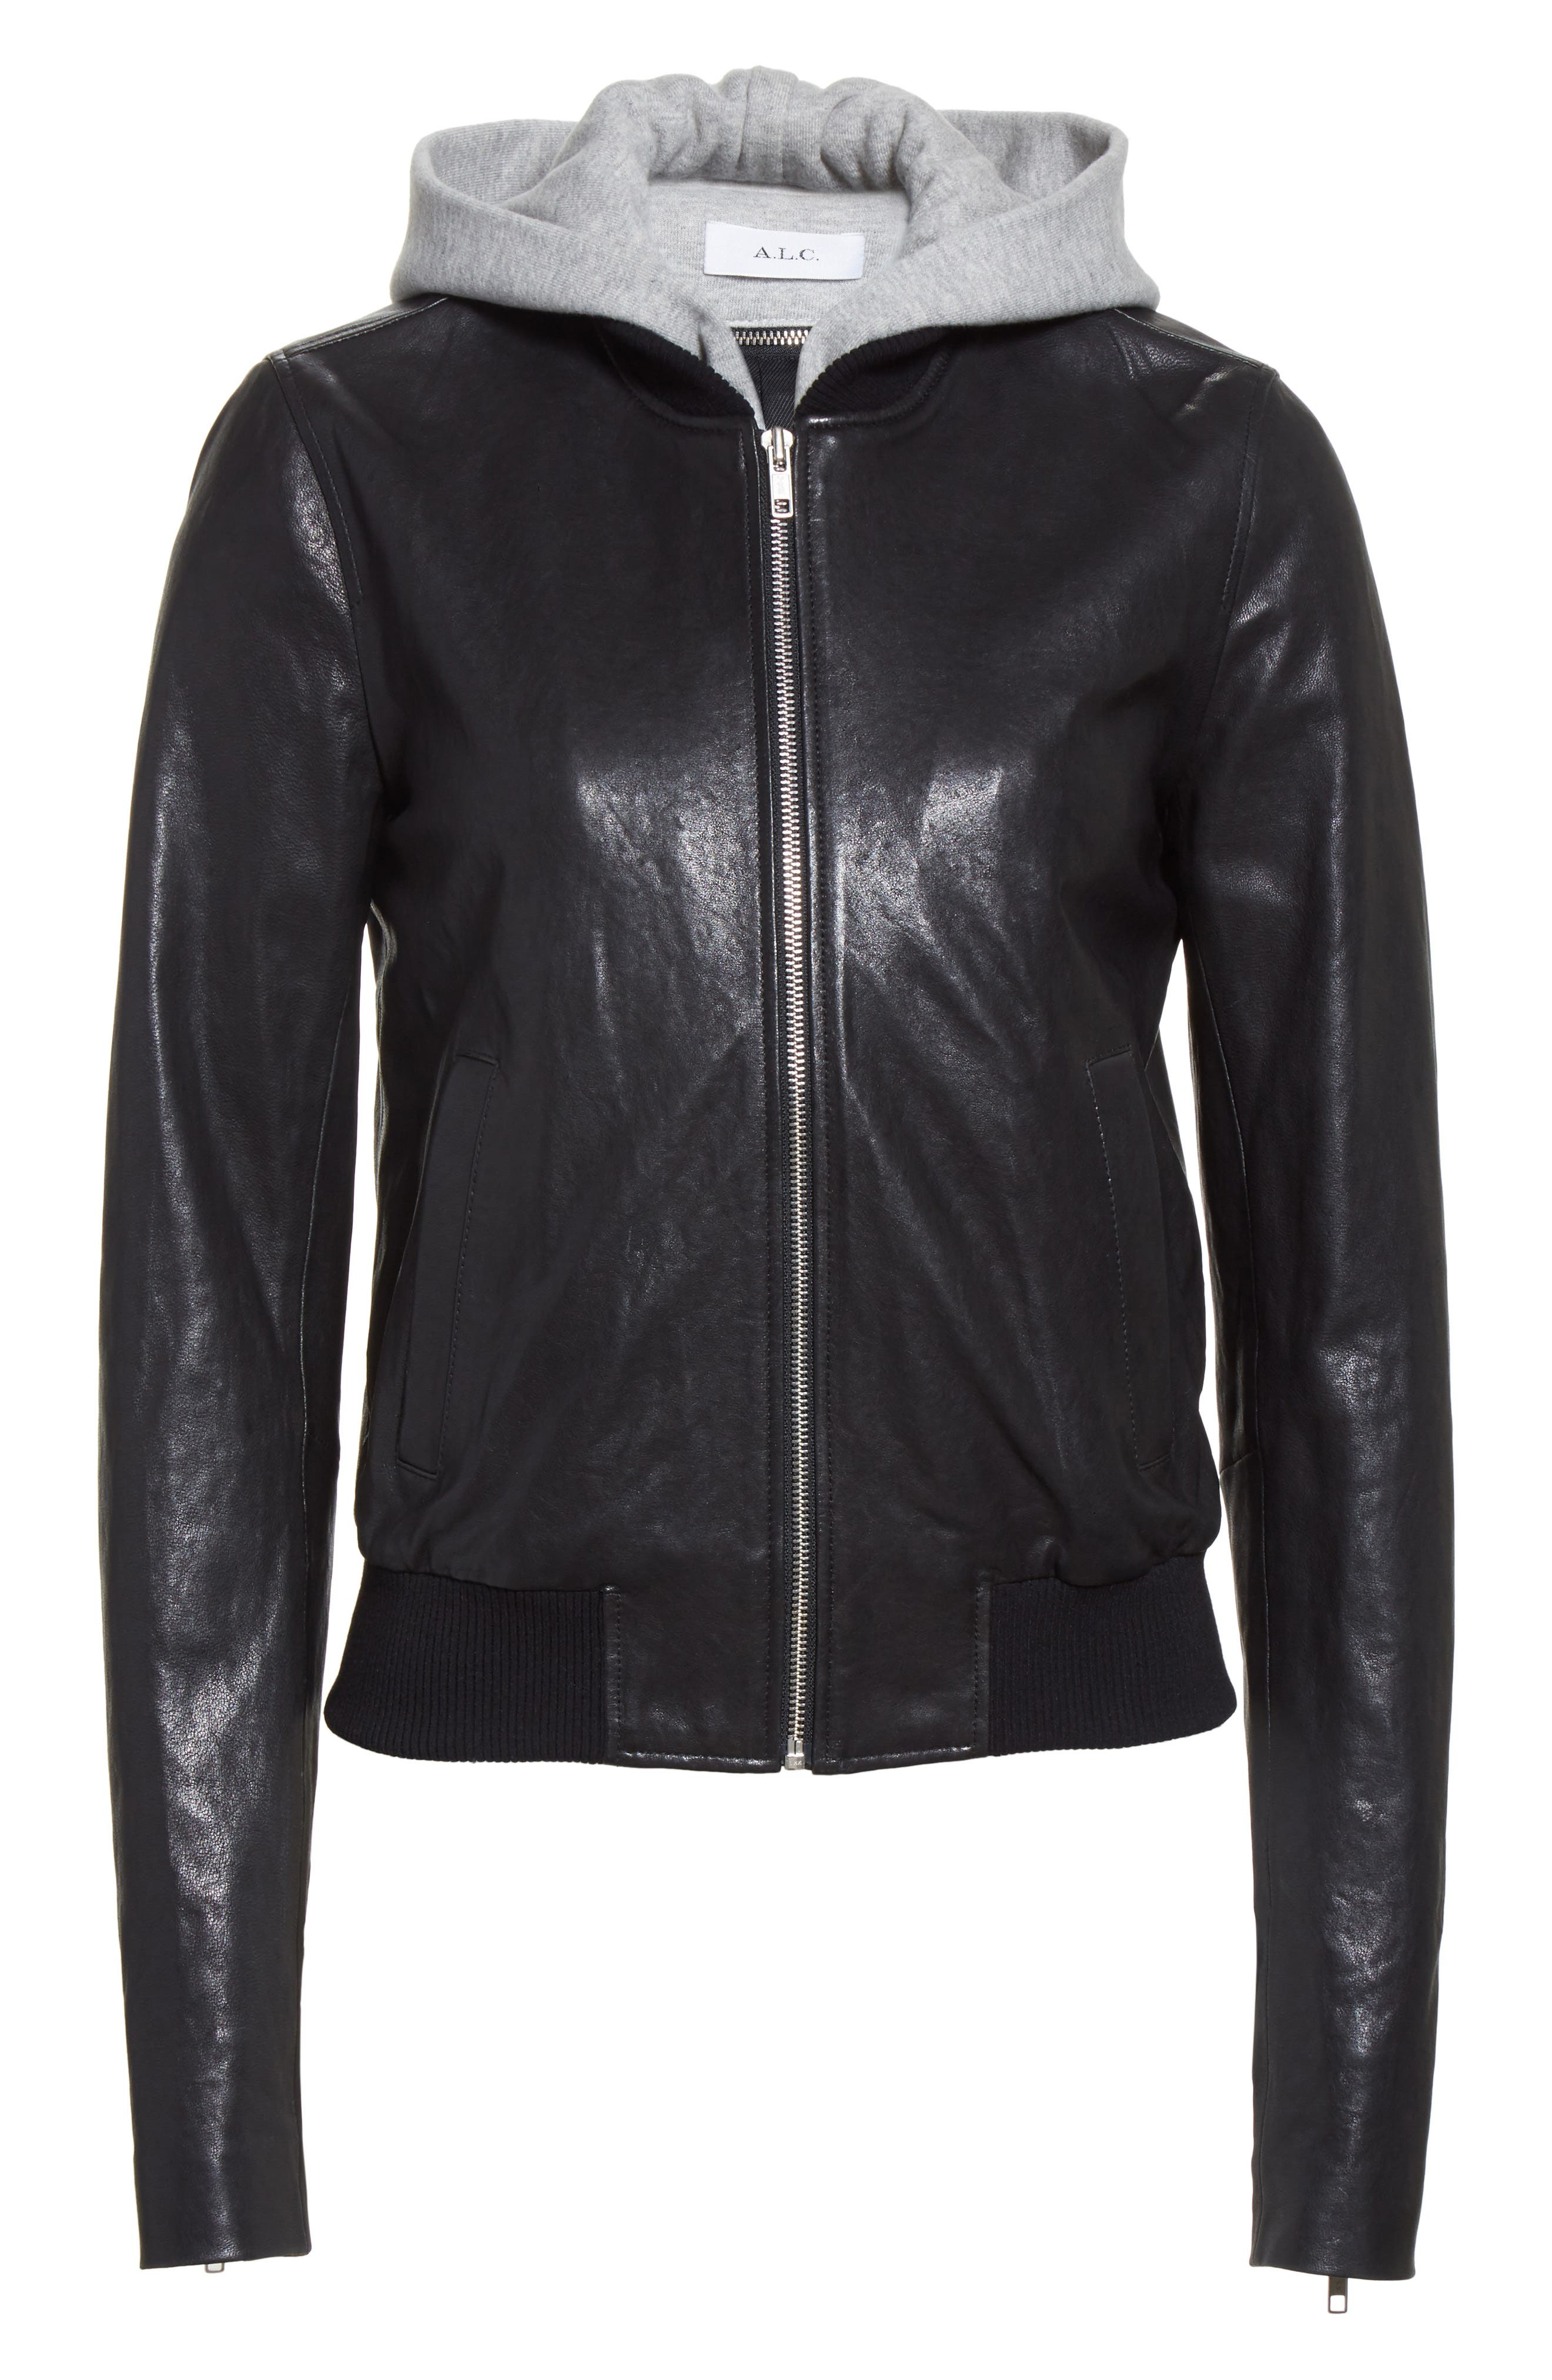 Edison Leather Jacket with Removable Hooded Inset,                             Alternate thumbnail 5, color,                             001